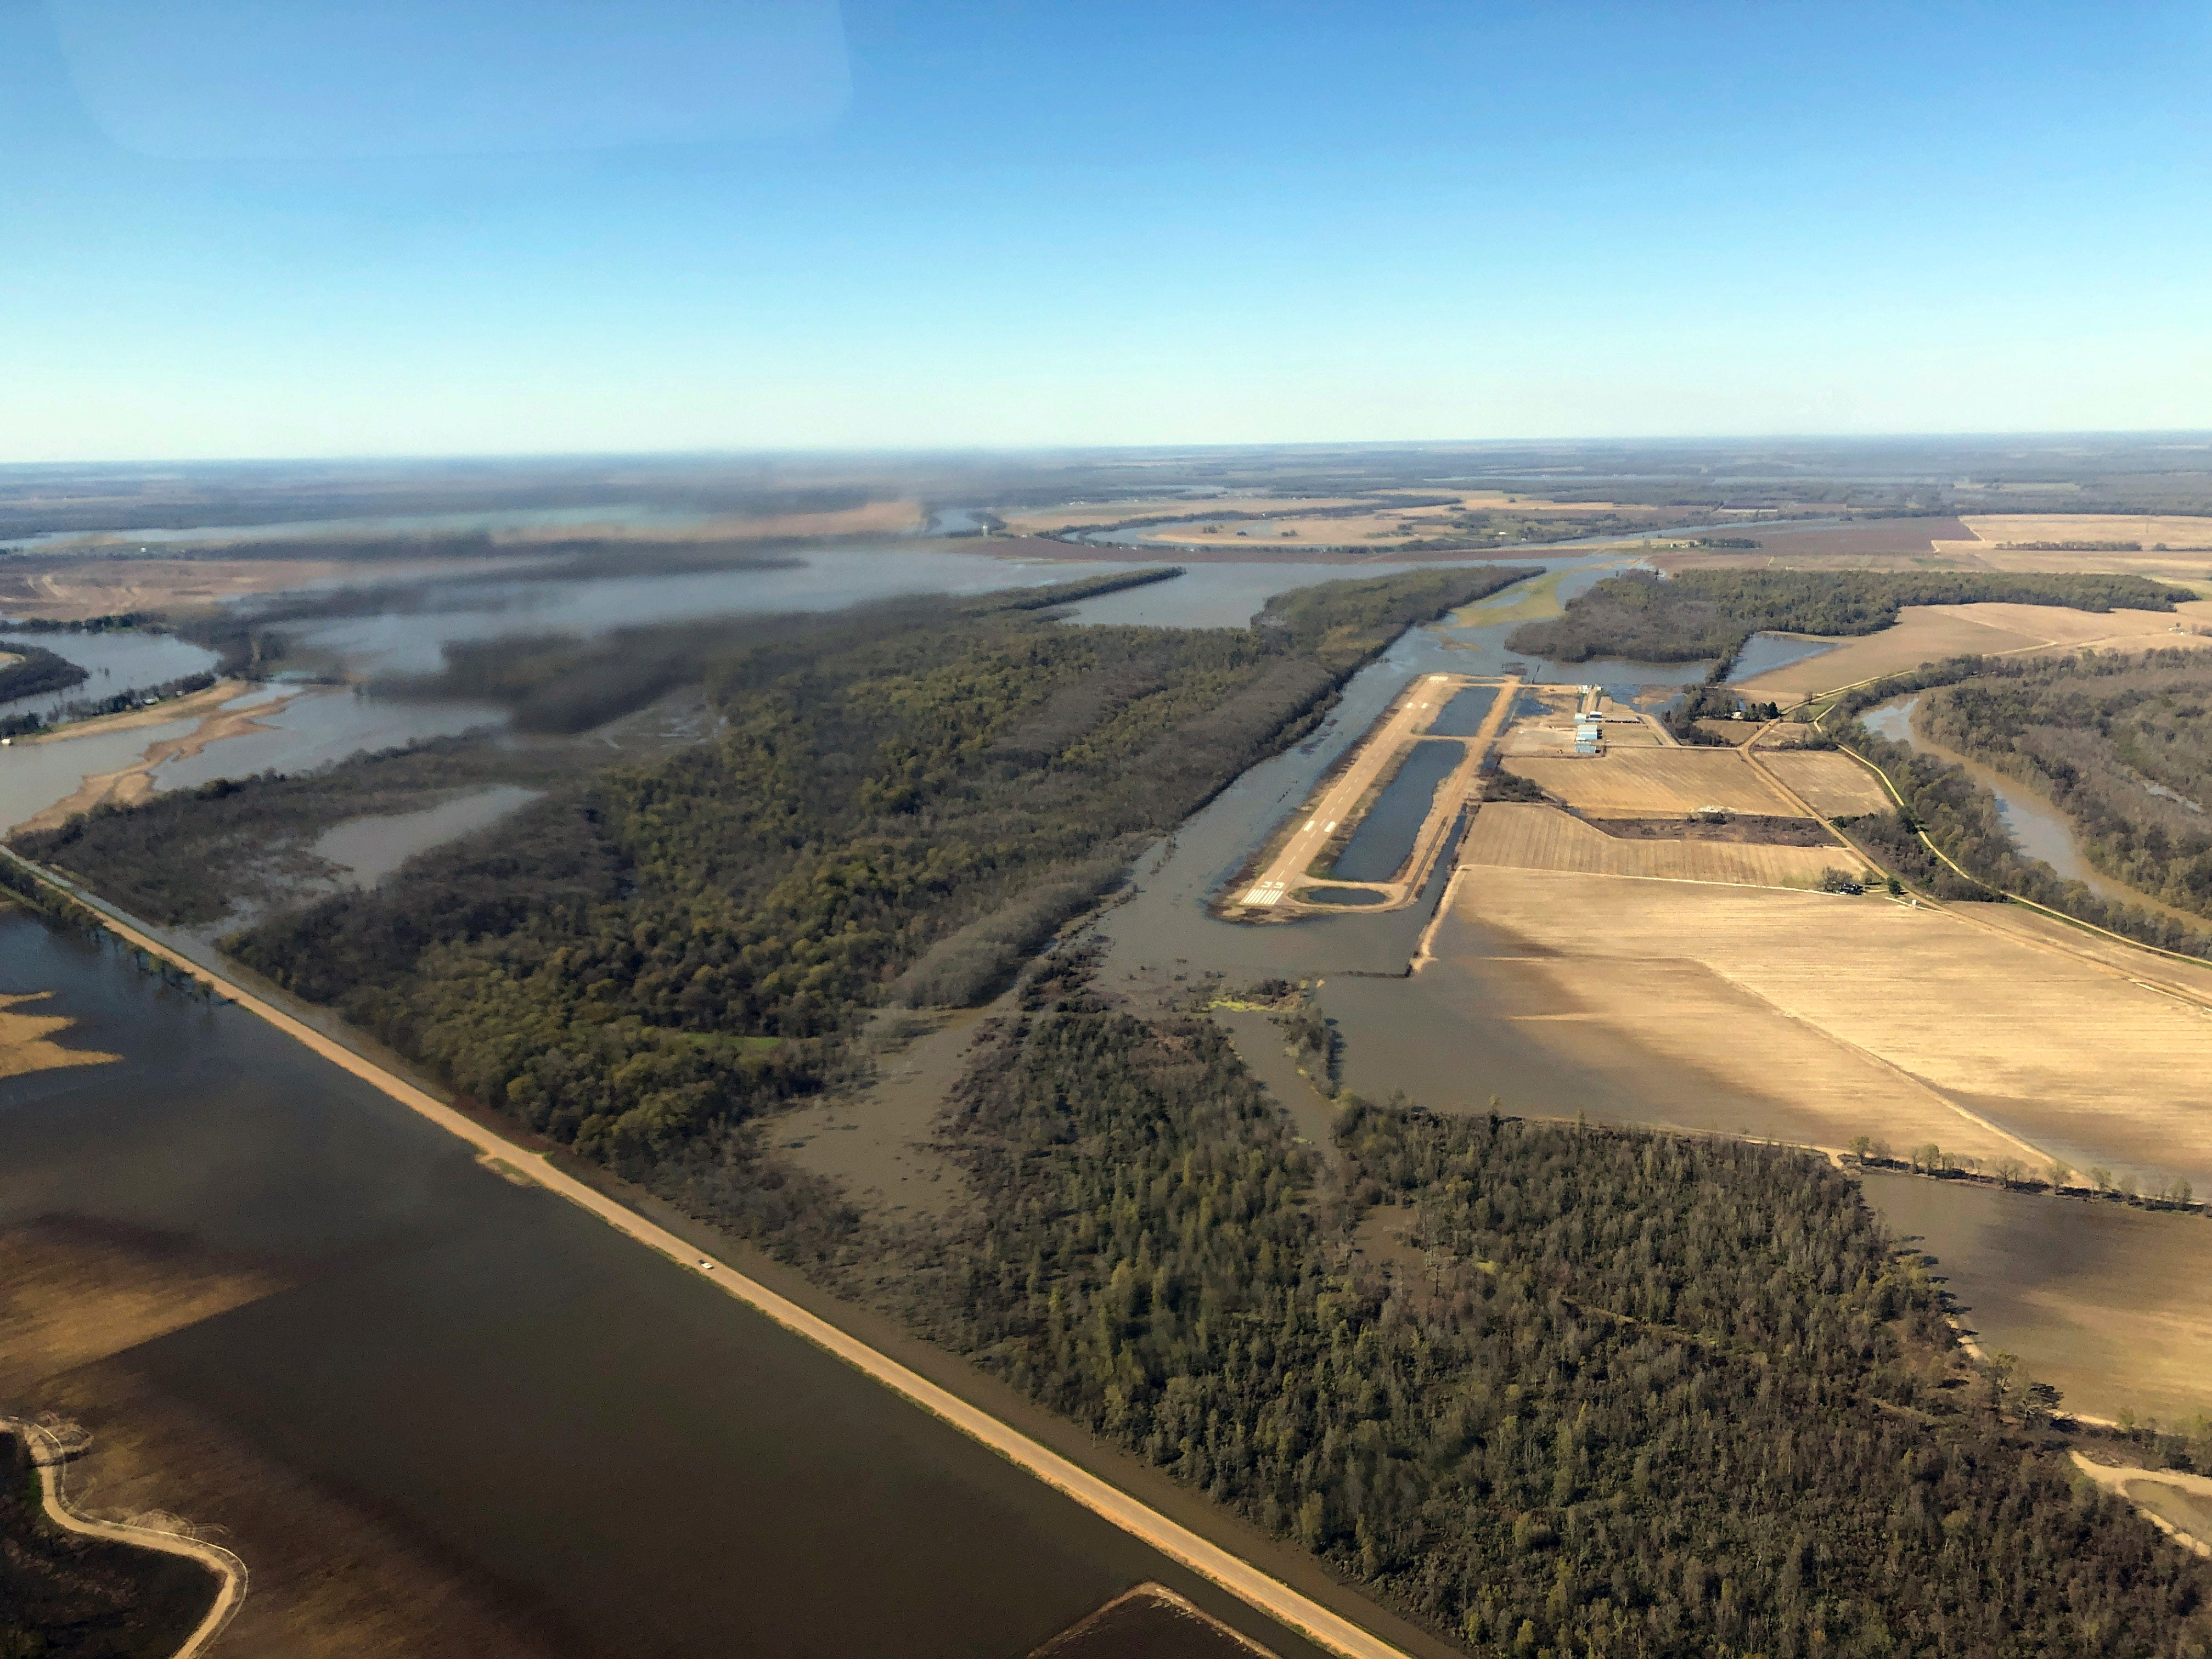 Backwater flooding begins to encircle the Yazoo City, Miss., airport., Sunday, March 17, 2019, as seen in this aerial photograph. Various communities in the Mississippi Delta are combatting both Mississippi River flooding and backwater flooding that are affecting homes, businesses and farm lands.